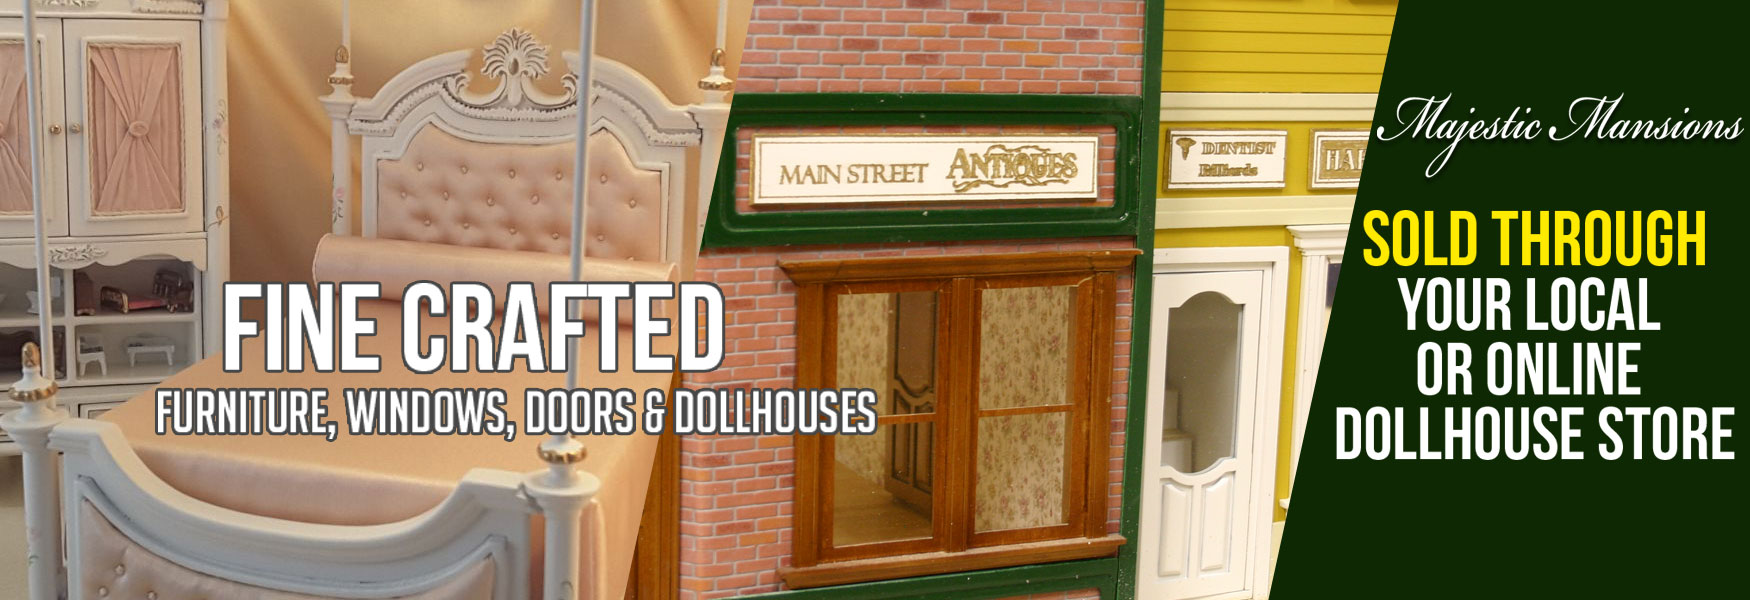 Majestic Mansions is a Dollhouse kit manufacturer based in Georgia just 45 minutes from Atlanta. & Dollhouse Kits Fine Furniture Windows u0026 Doors - Majestic Mansions